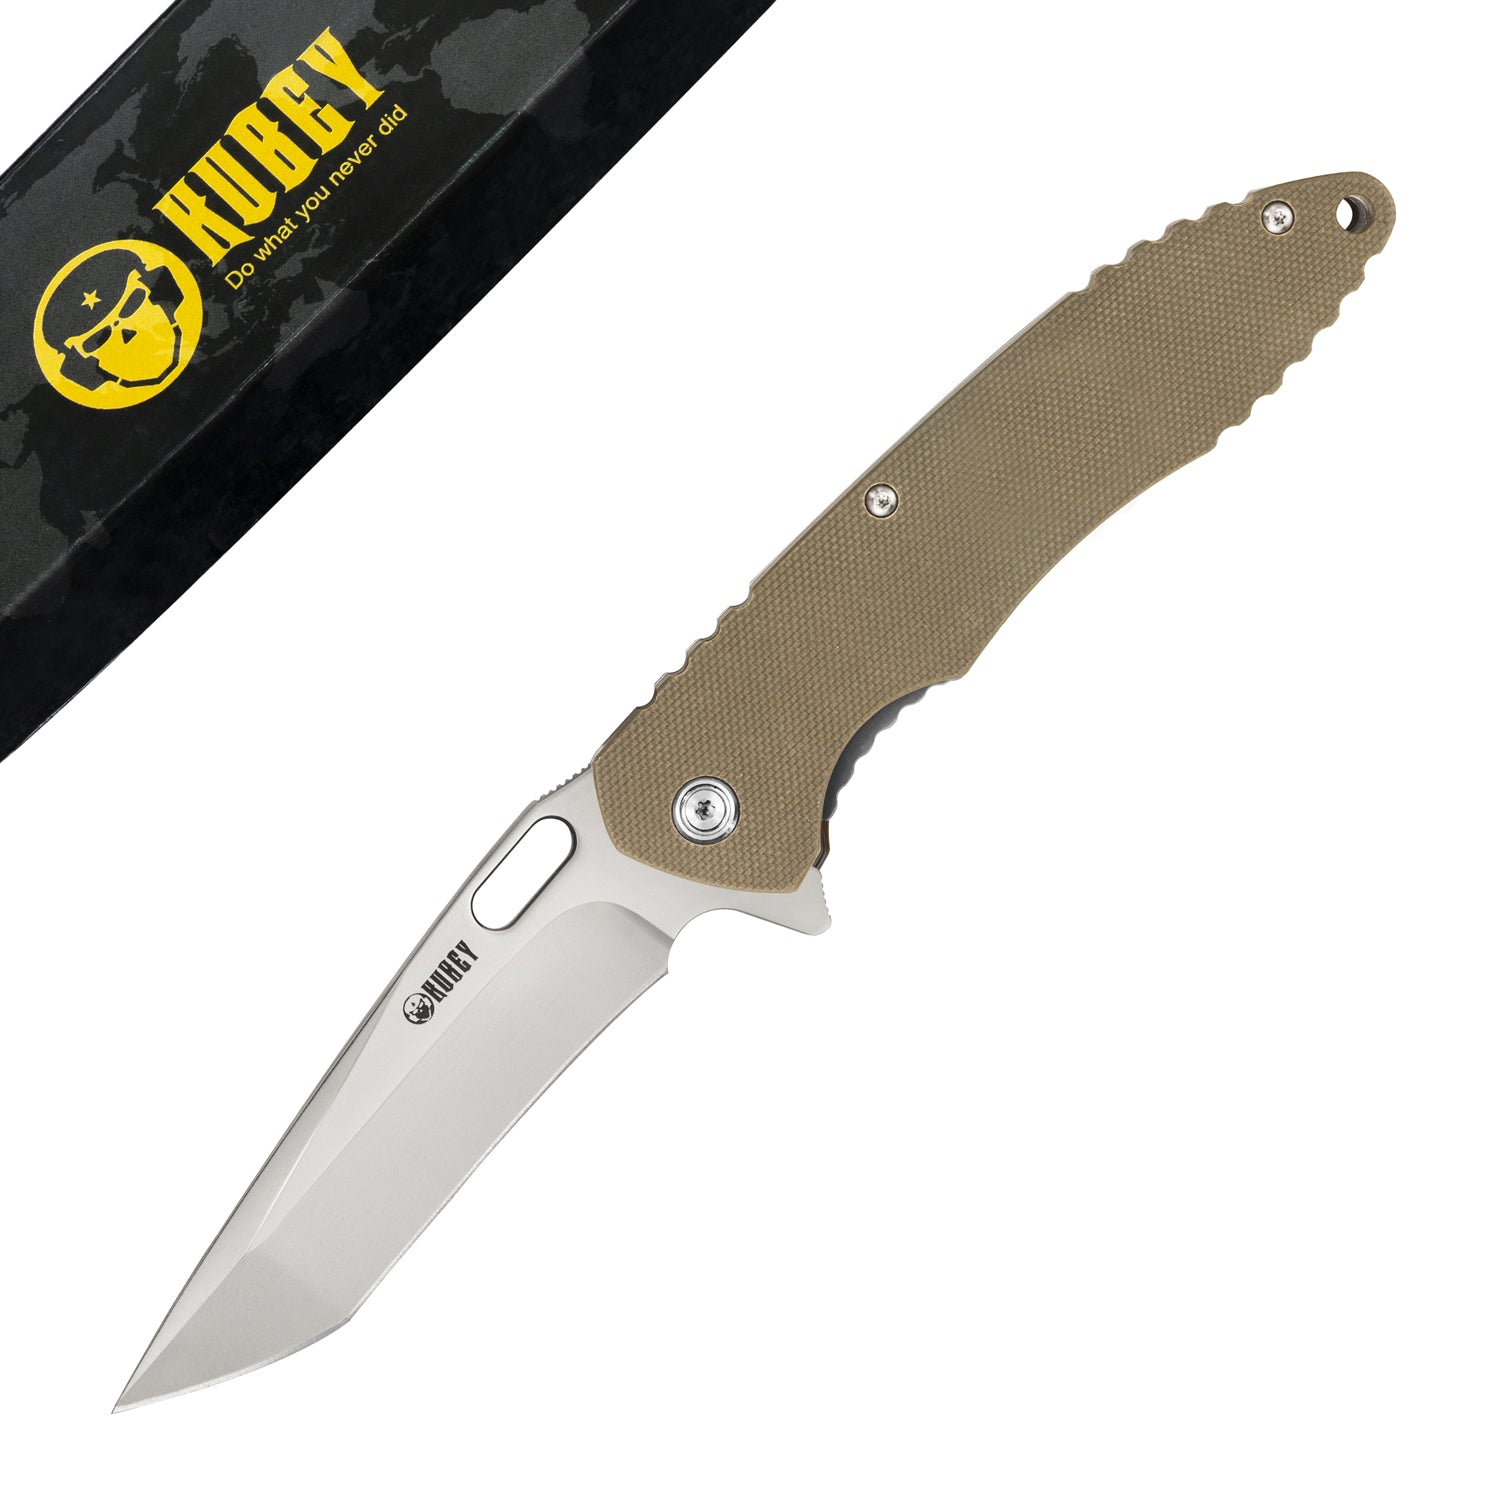 "Darkness Liner Lock Flipper Knife Tan G10 Handle (3.7"" Sandblast AUS-10 ) KU003C"